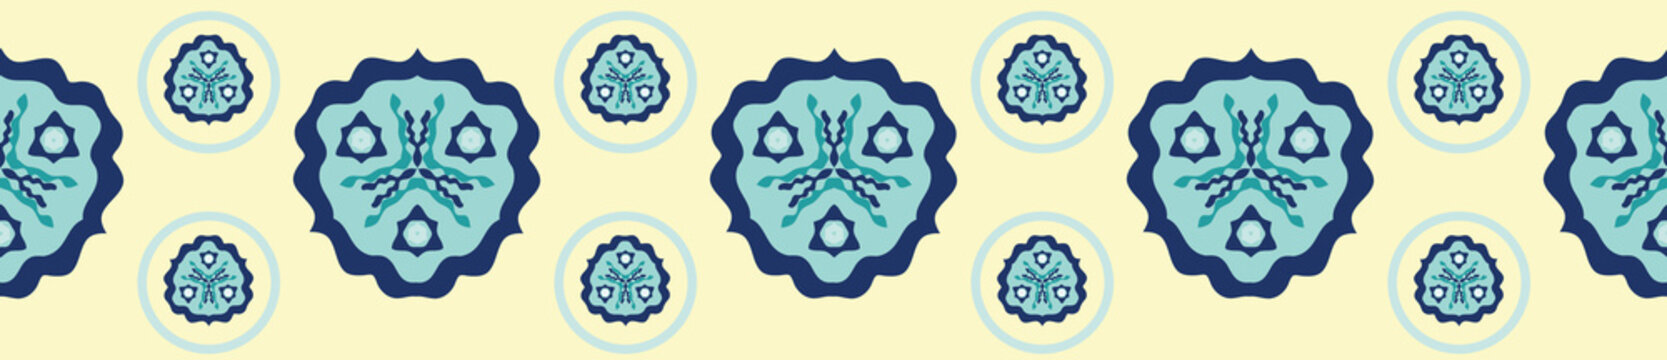 Decorative tiled geometric medallion border. Seamless repeat vector design in teal, light turquoise, navy blue and light yellow. Great for summer textiles, beach, resort and seaside home decor.